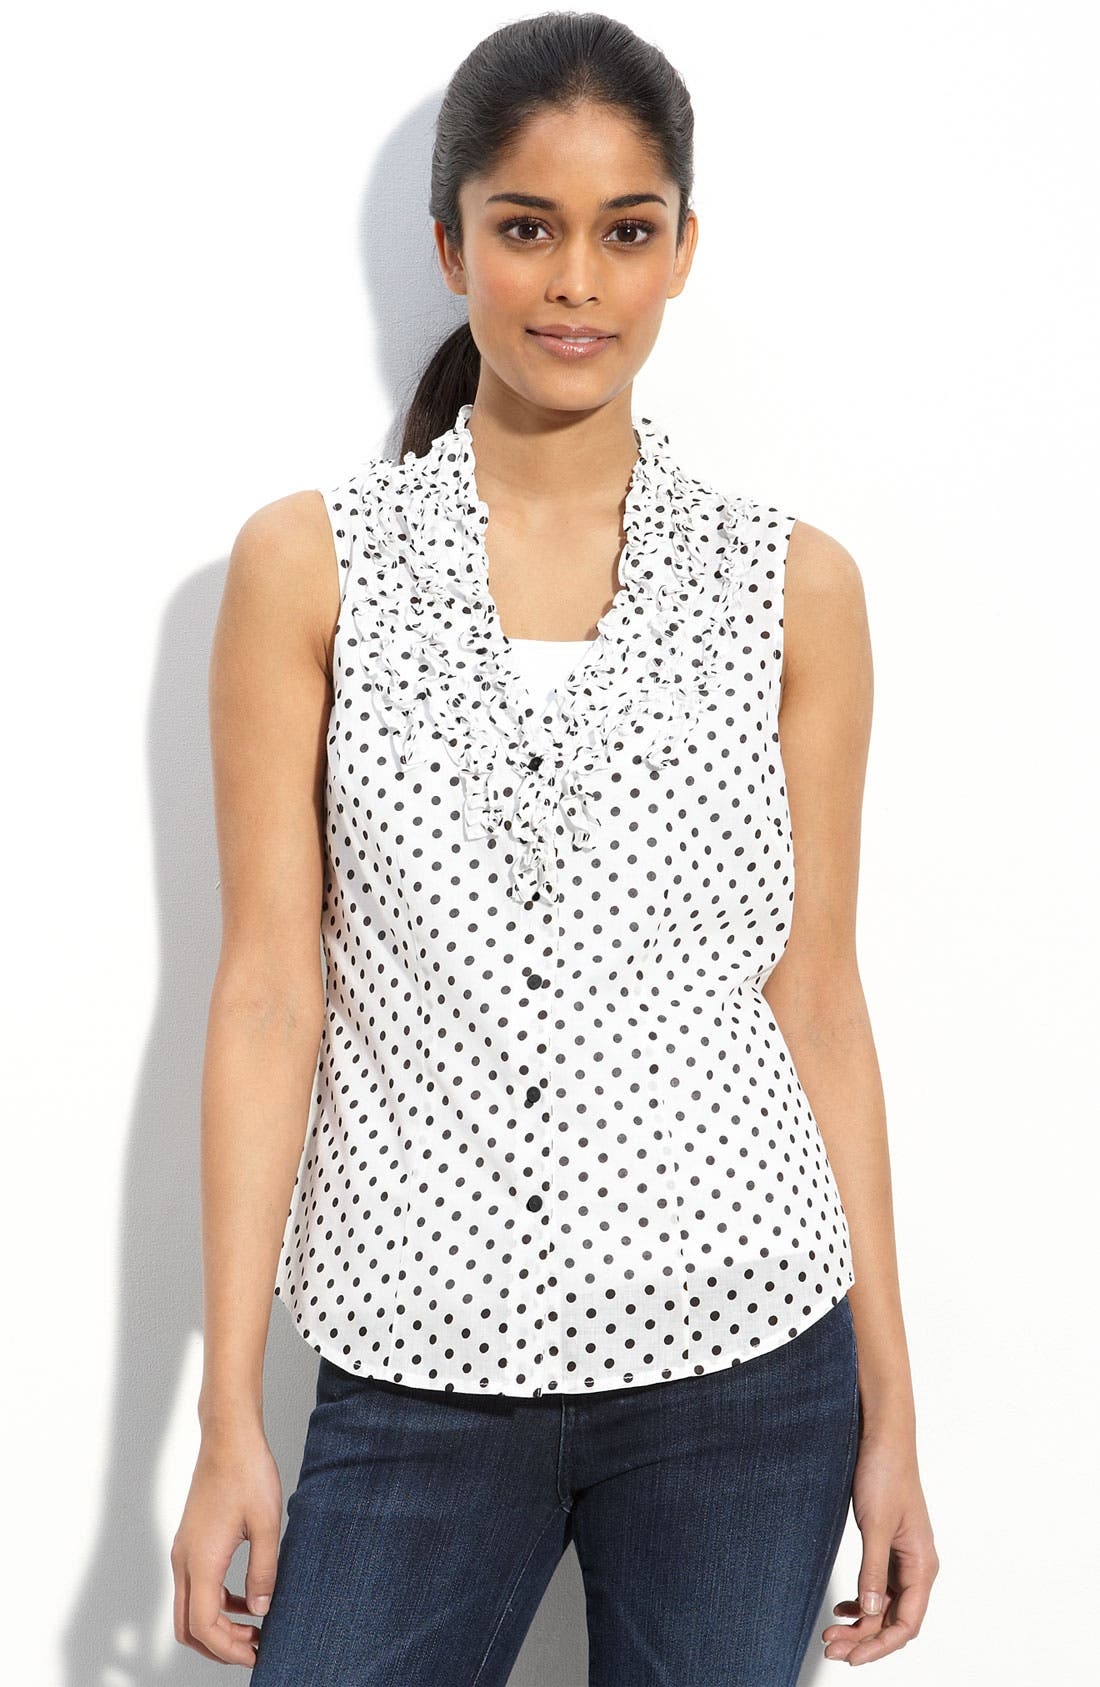 Main Image - Sandra Ingrish Ruffled Polka Dot Blouse